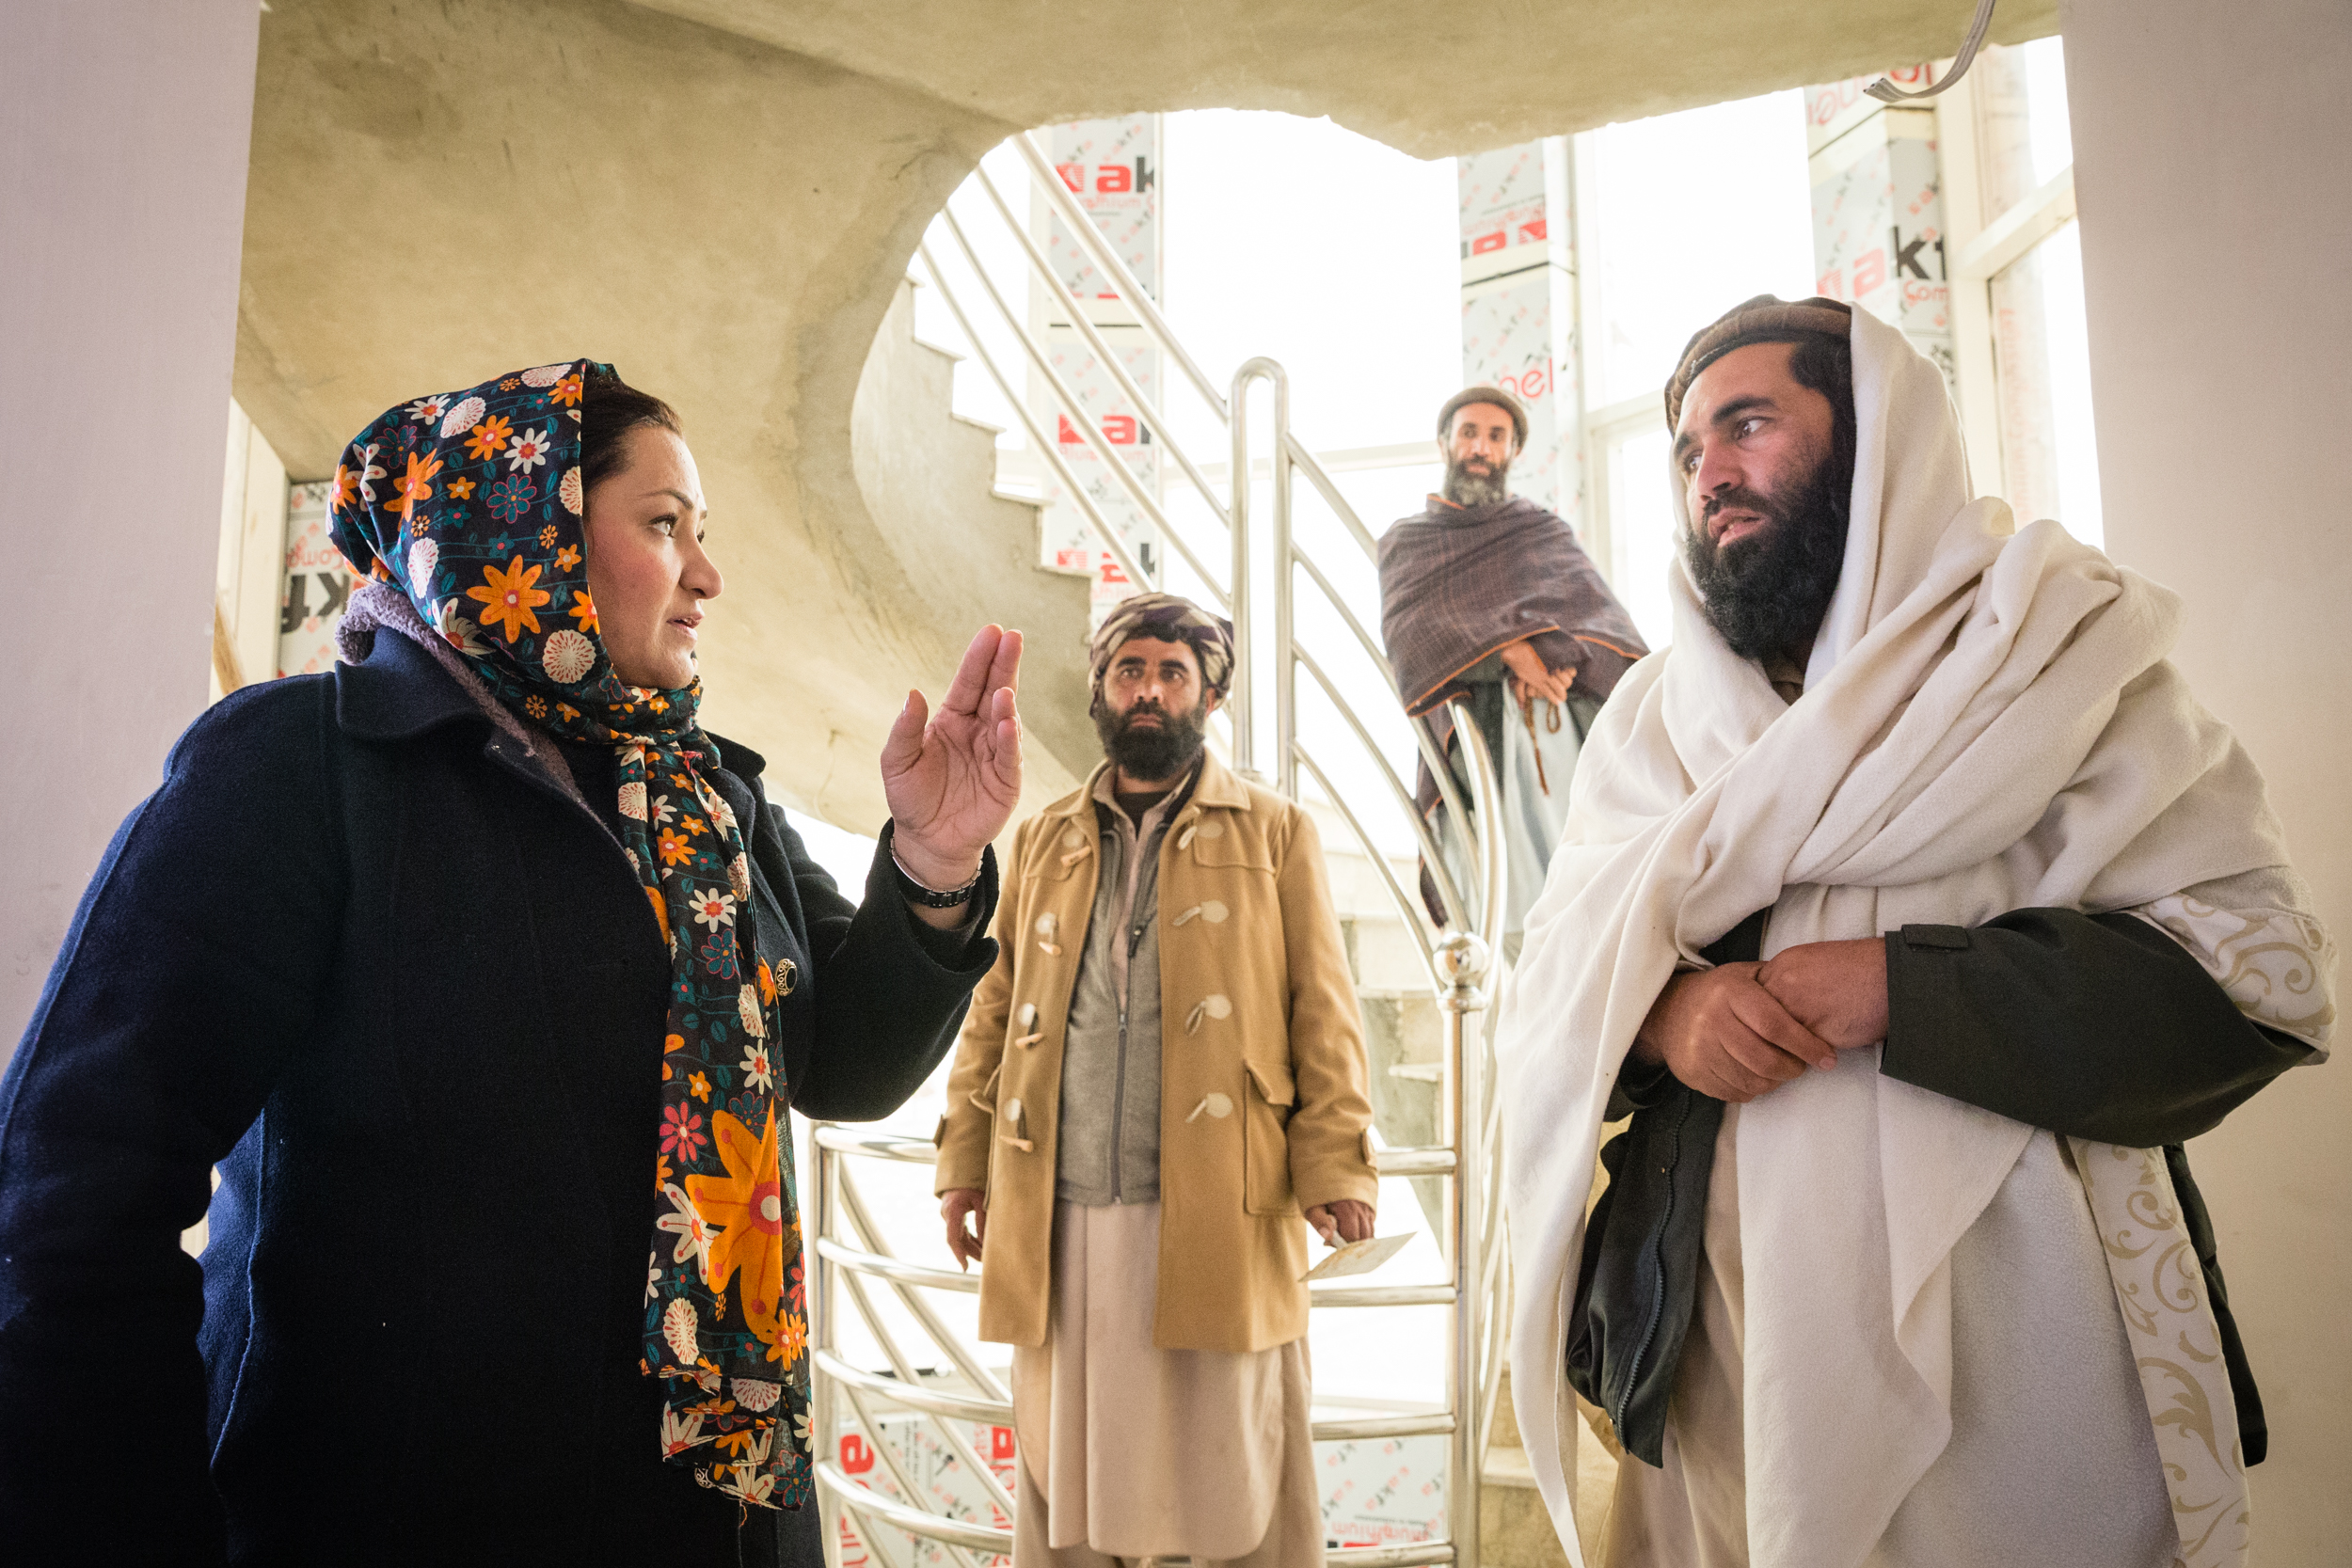 Civil engineer Manizha Paktin (left), director and co-founder of Stand Up for Afghan Women, instructs builders at a construction site in Kabul.  Manizha was one of seven people photographed for an Amnesty International report to highlight women human rights defenders at risk in Afghanistan.